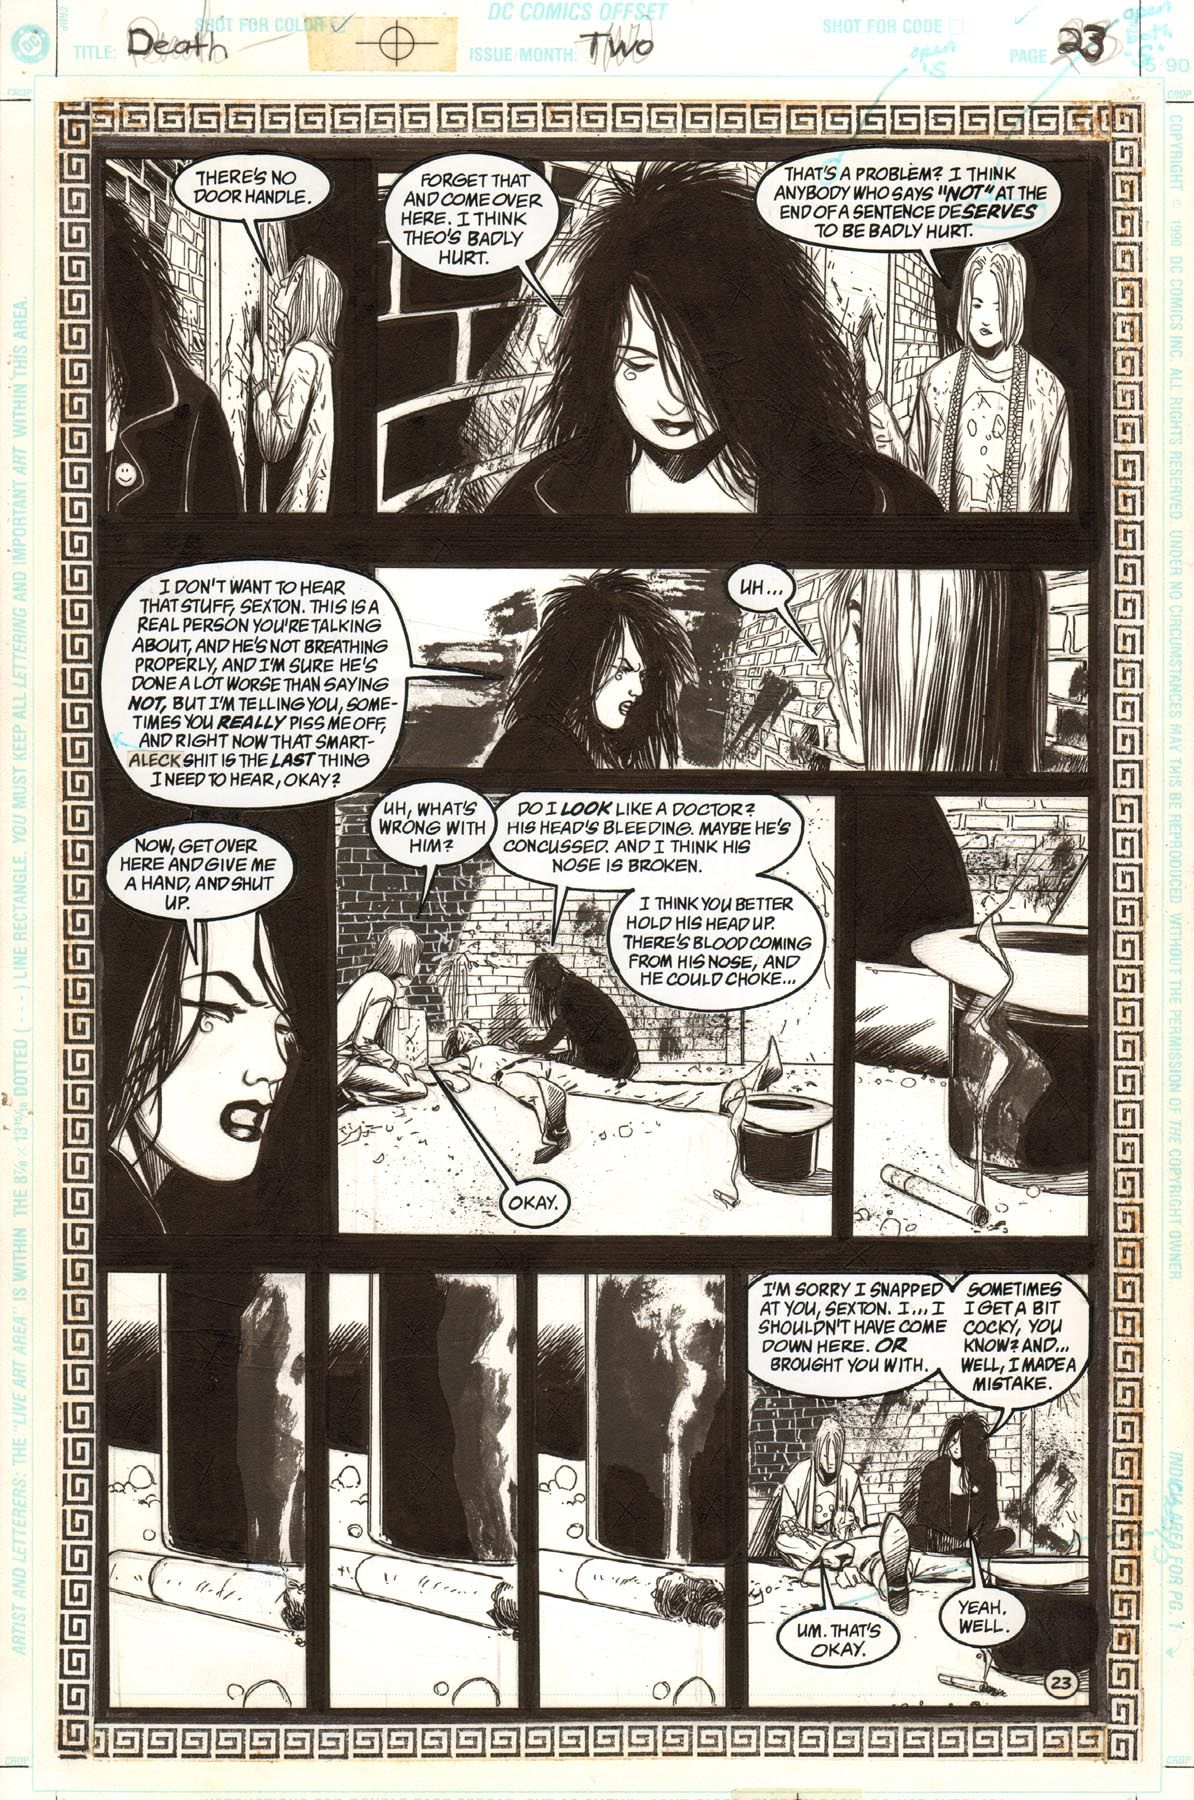 DEATH: THE HIGH COST OF LIVING #2 PAGE 23